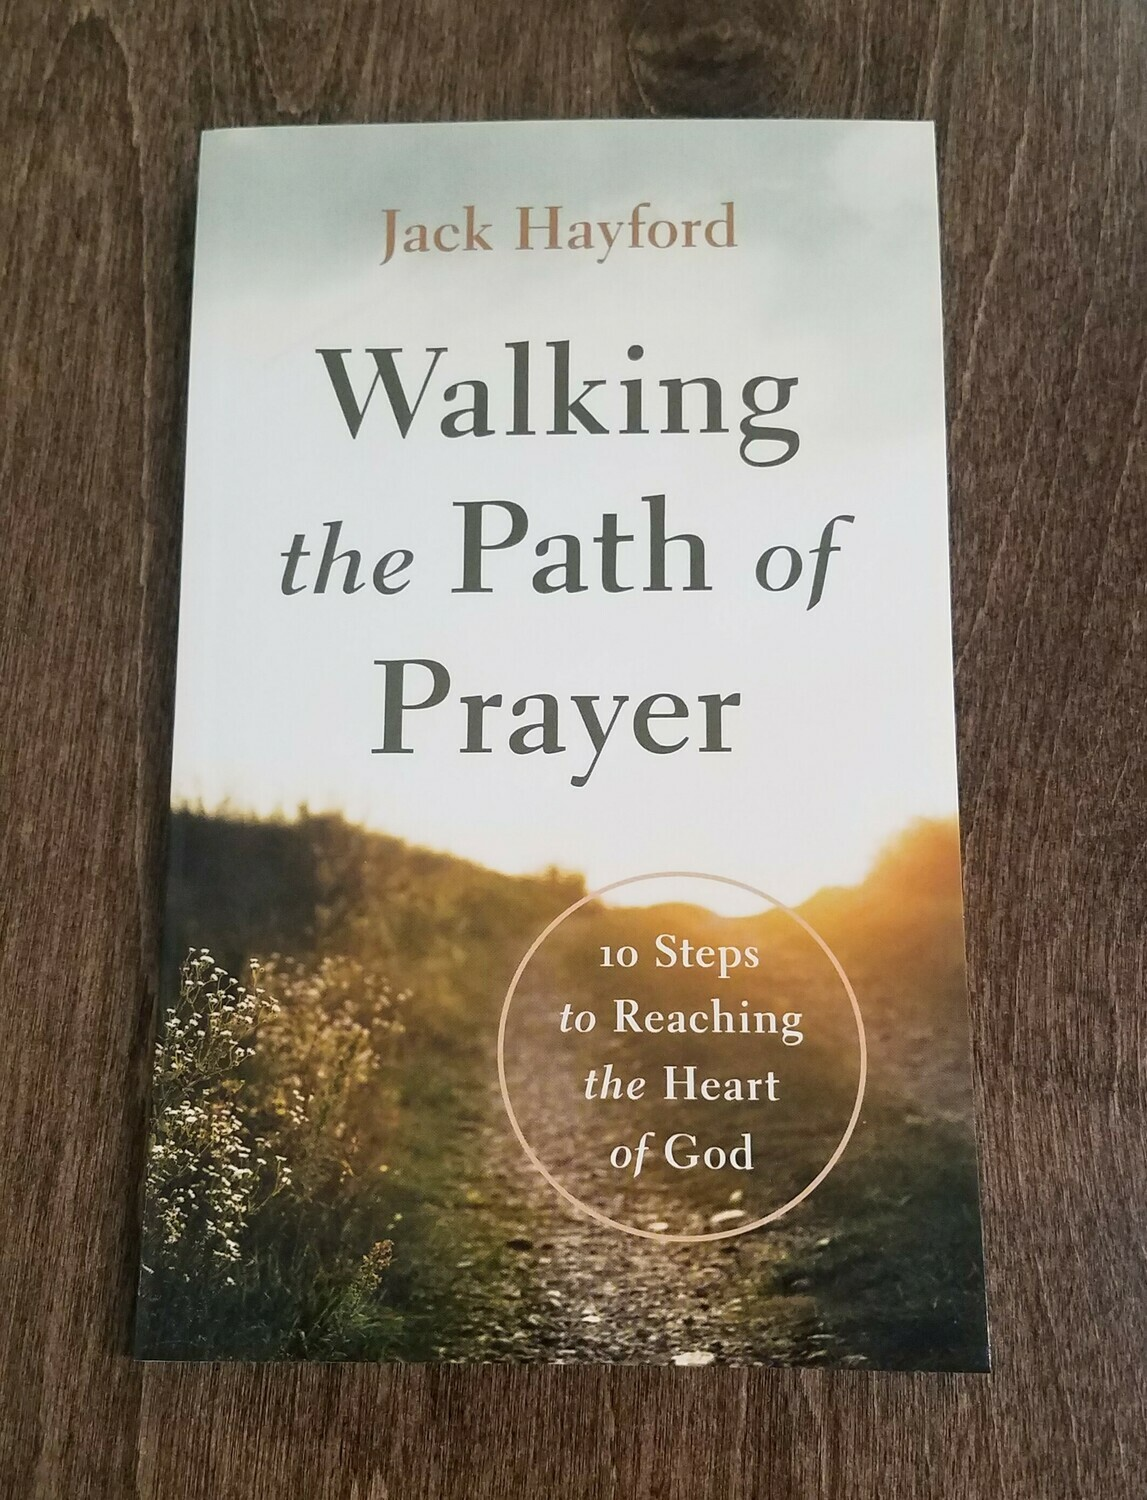 Walking the Path of Prayer by Jack Hayford